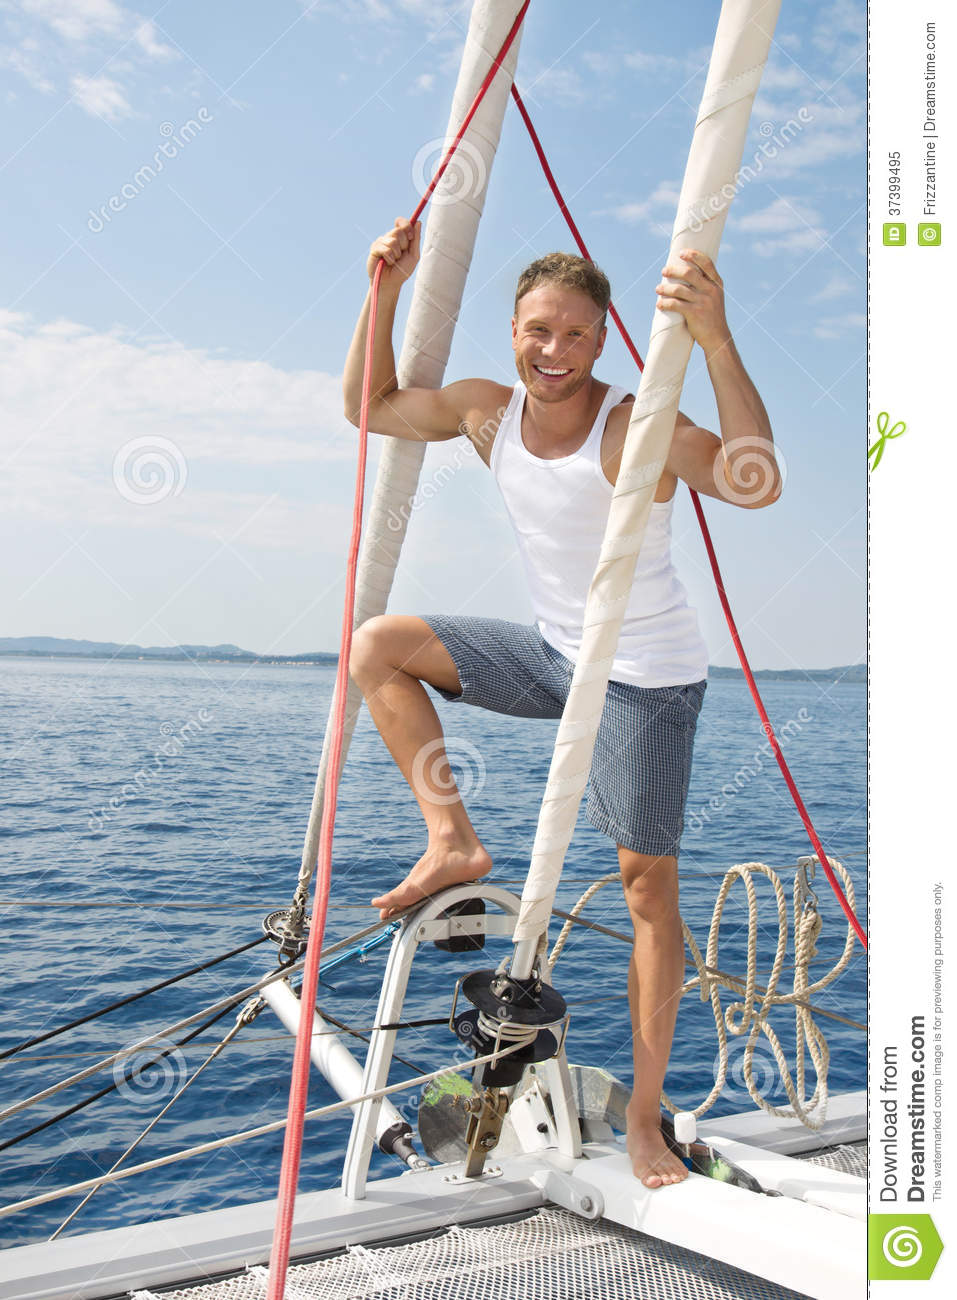 Blond Handsome Young Man On Sailing Boat. Stock Image ...